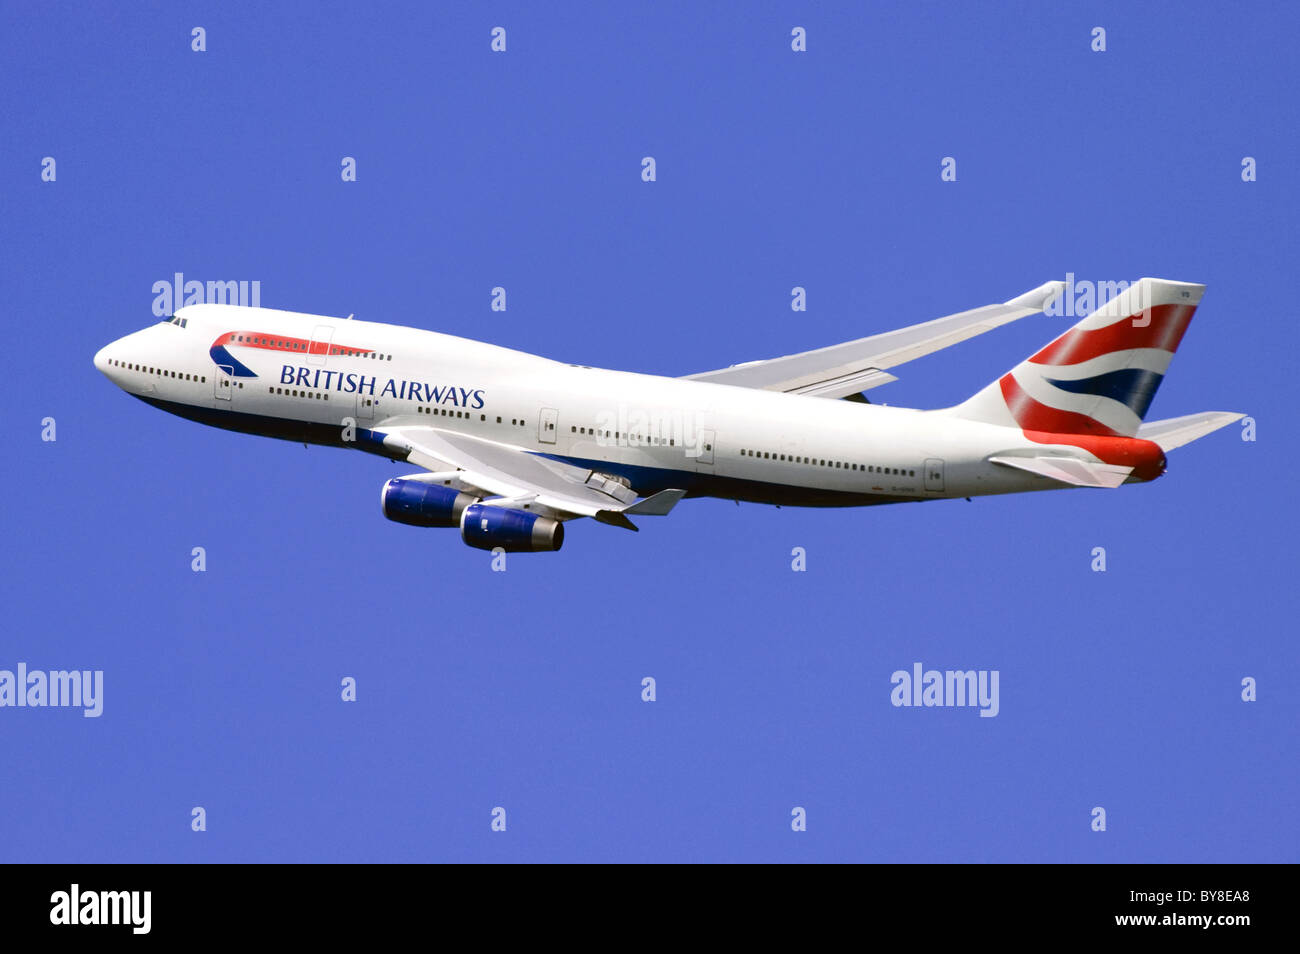 British Airways Boeing 747 jumbo jet climbing out after take off from London Heathrow Airport Stock Photo